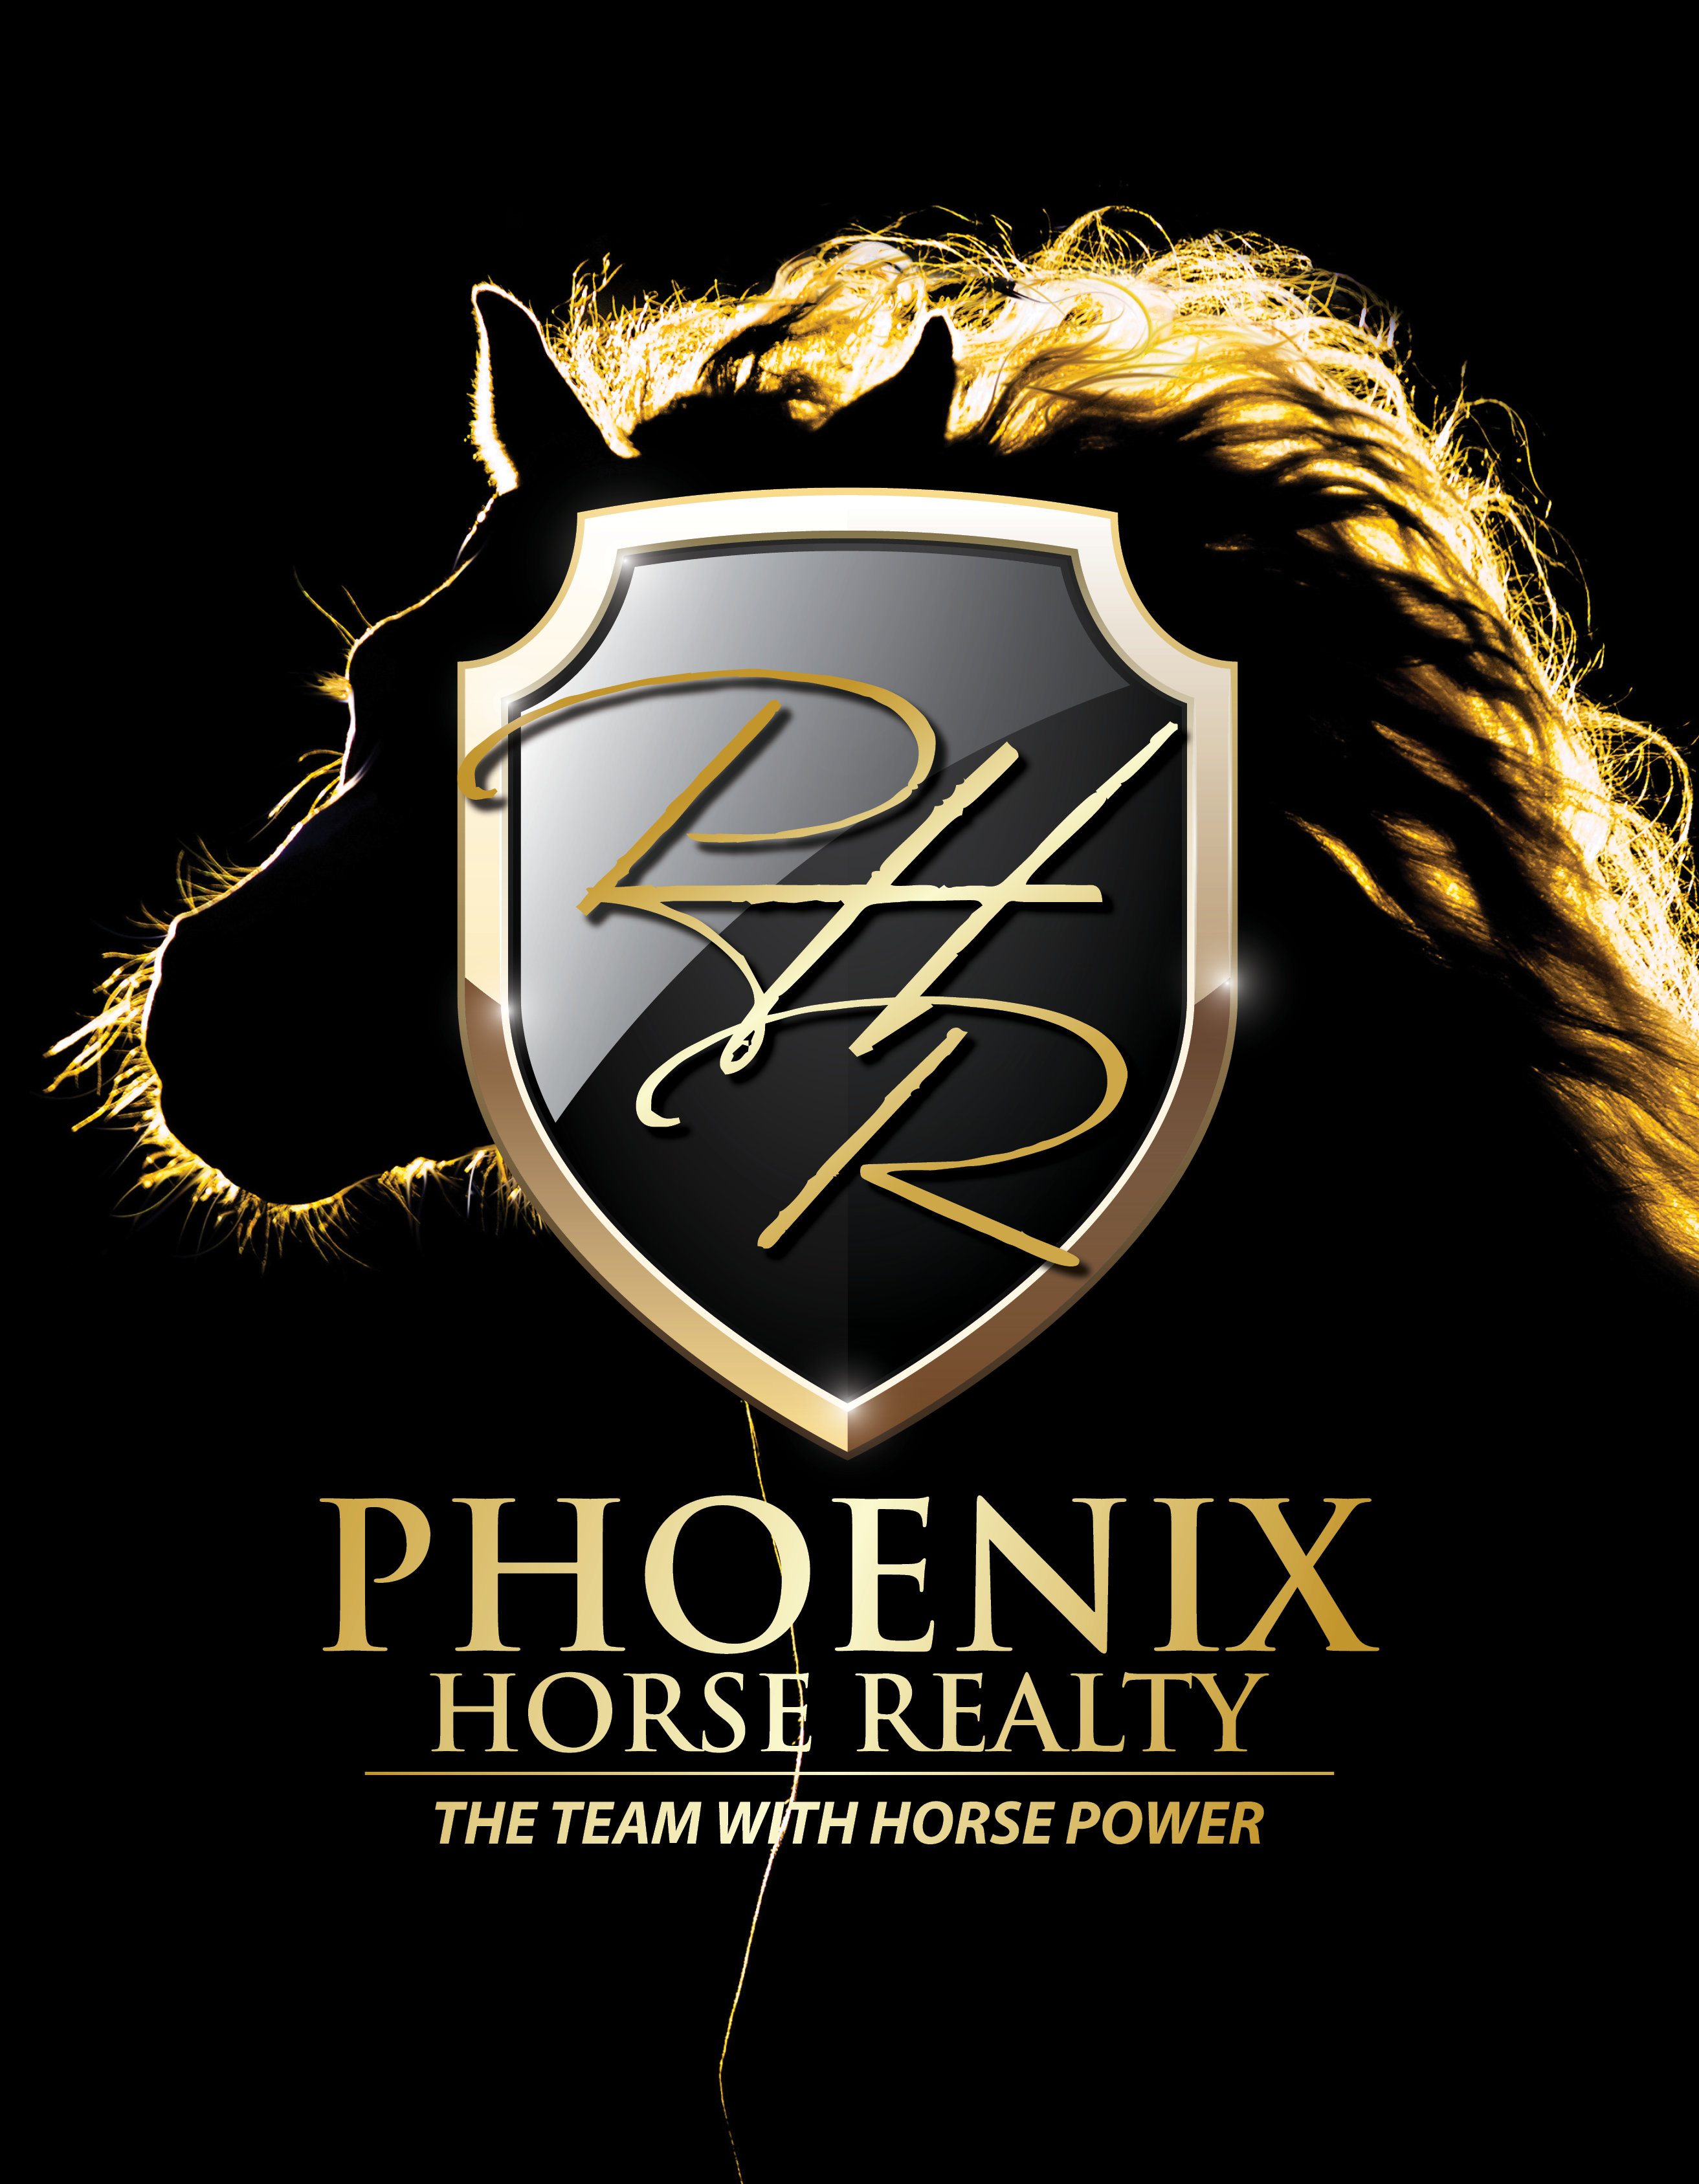 Phoenix Horse Realty - Facebook Page